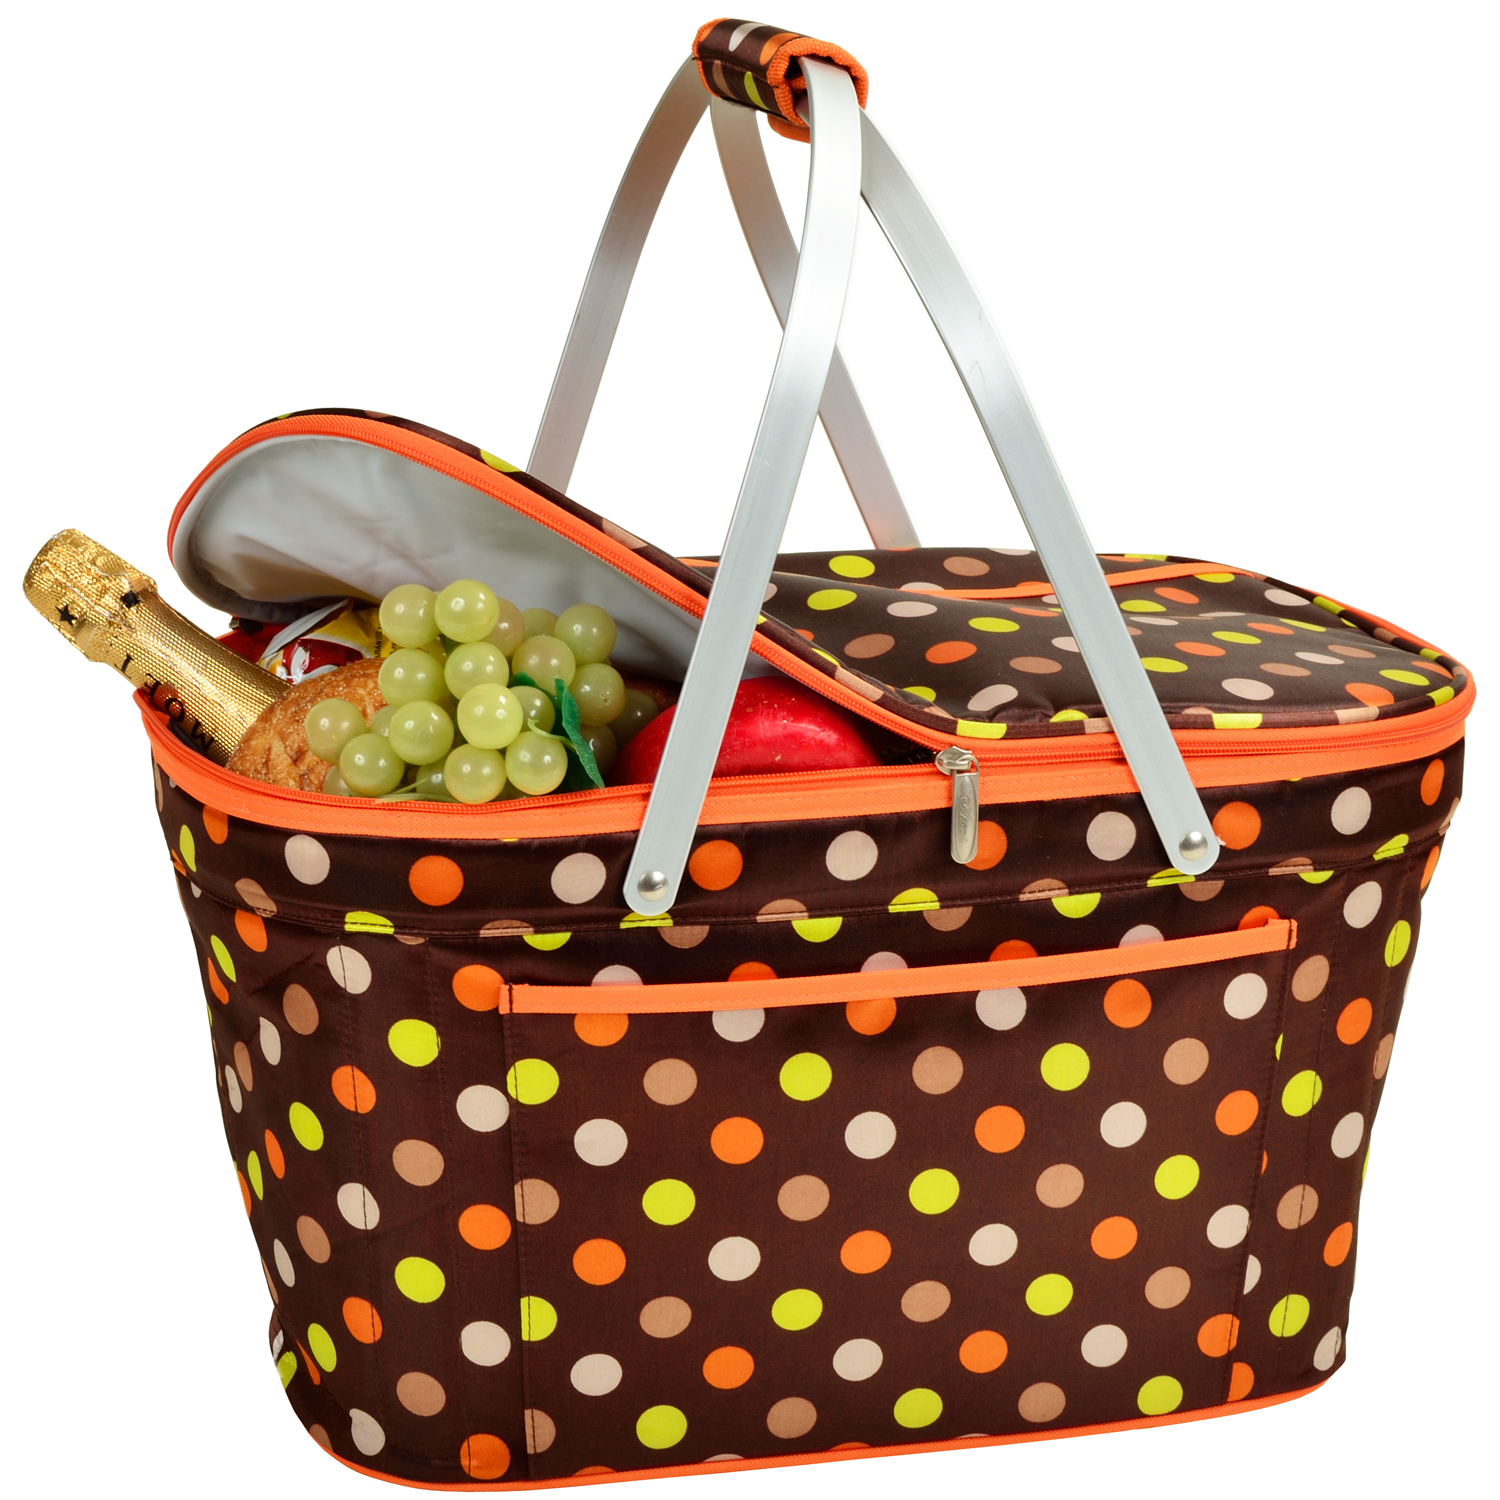 Picnic Basket With Ants Clip Art.